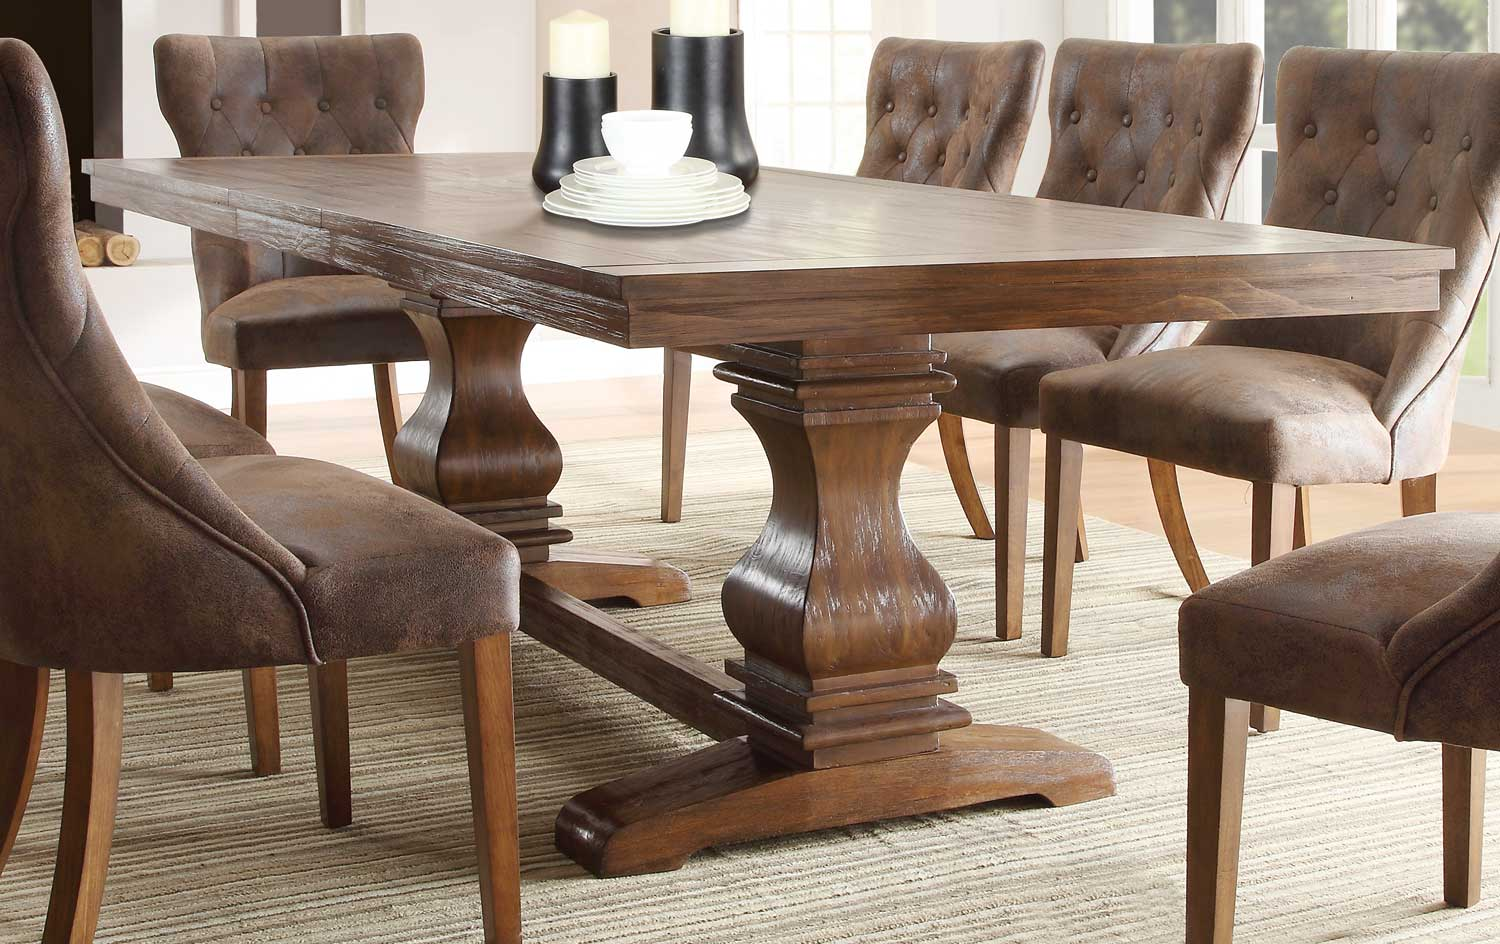 Homelegance Marie Louise Dining Table Rustic Oak Brown 2526 96 At Homelement Com